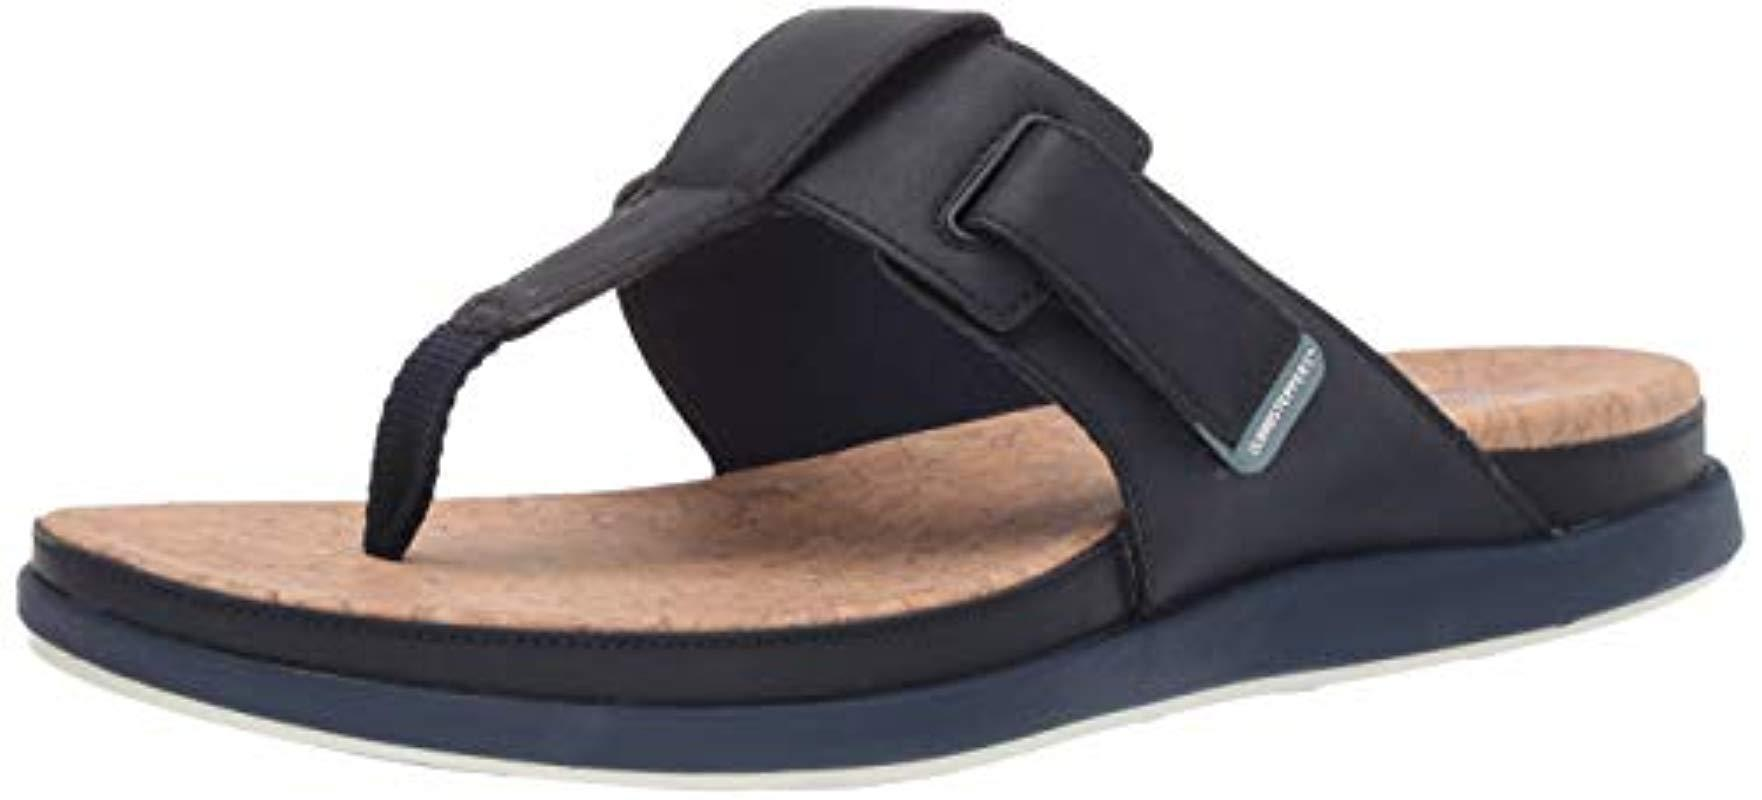 6492be550385 Lyst - Clarks Step June Reef Sandal in Blue - Save 18%